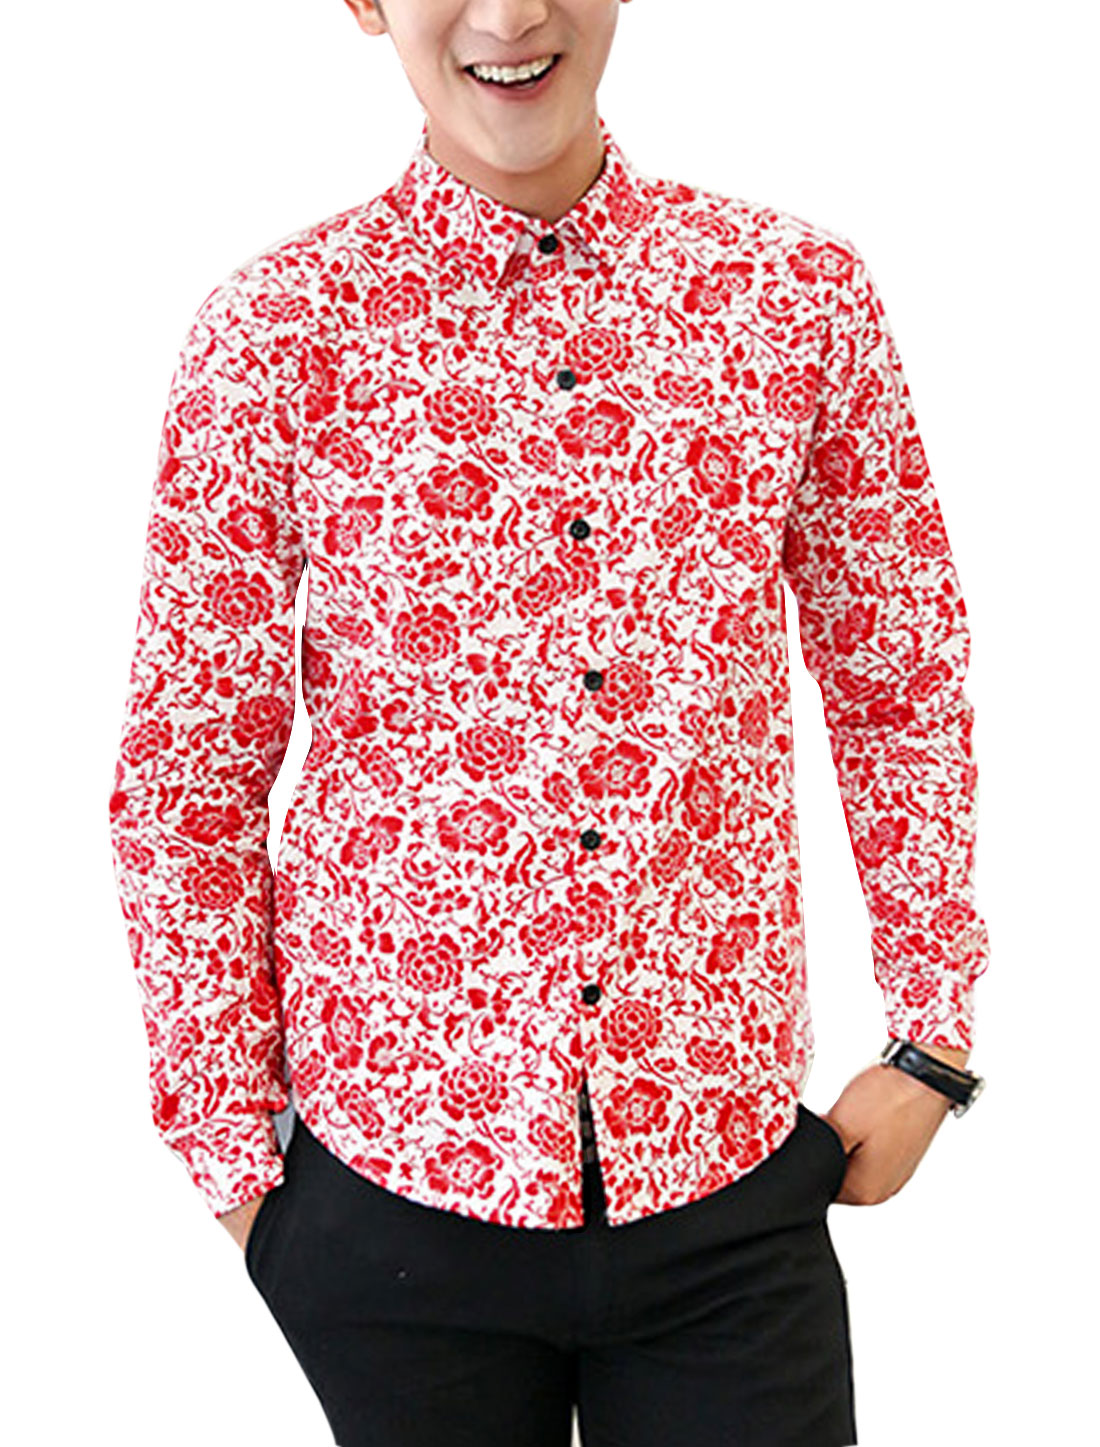 Buttoned Cuffs All-over Flower Pattern Slim Fit Shirts for Men Red M